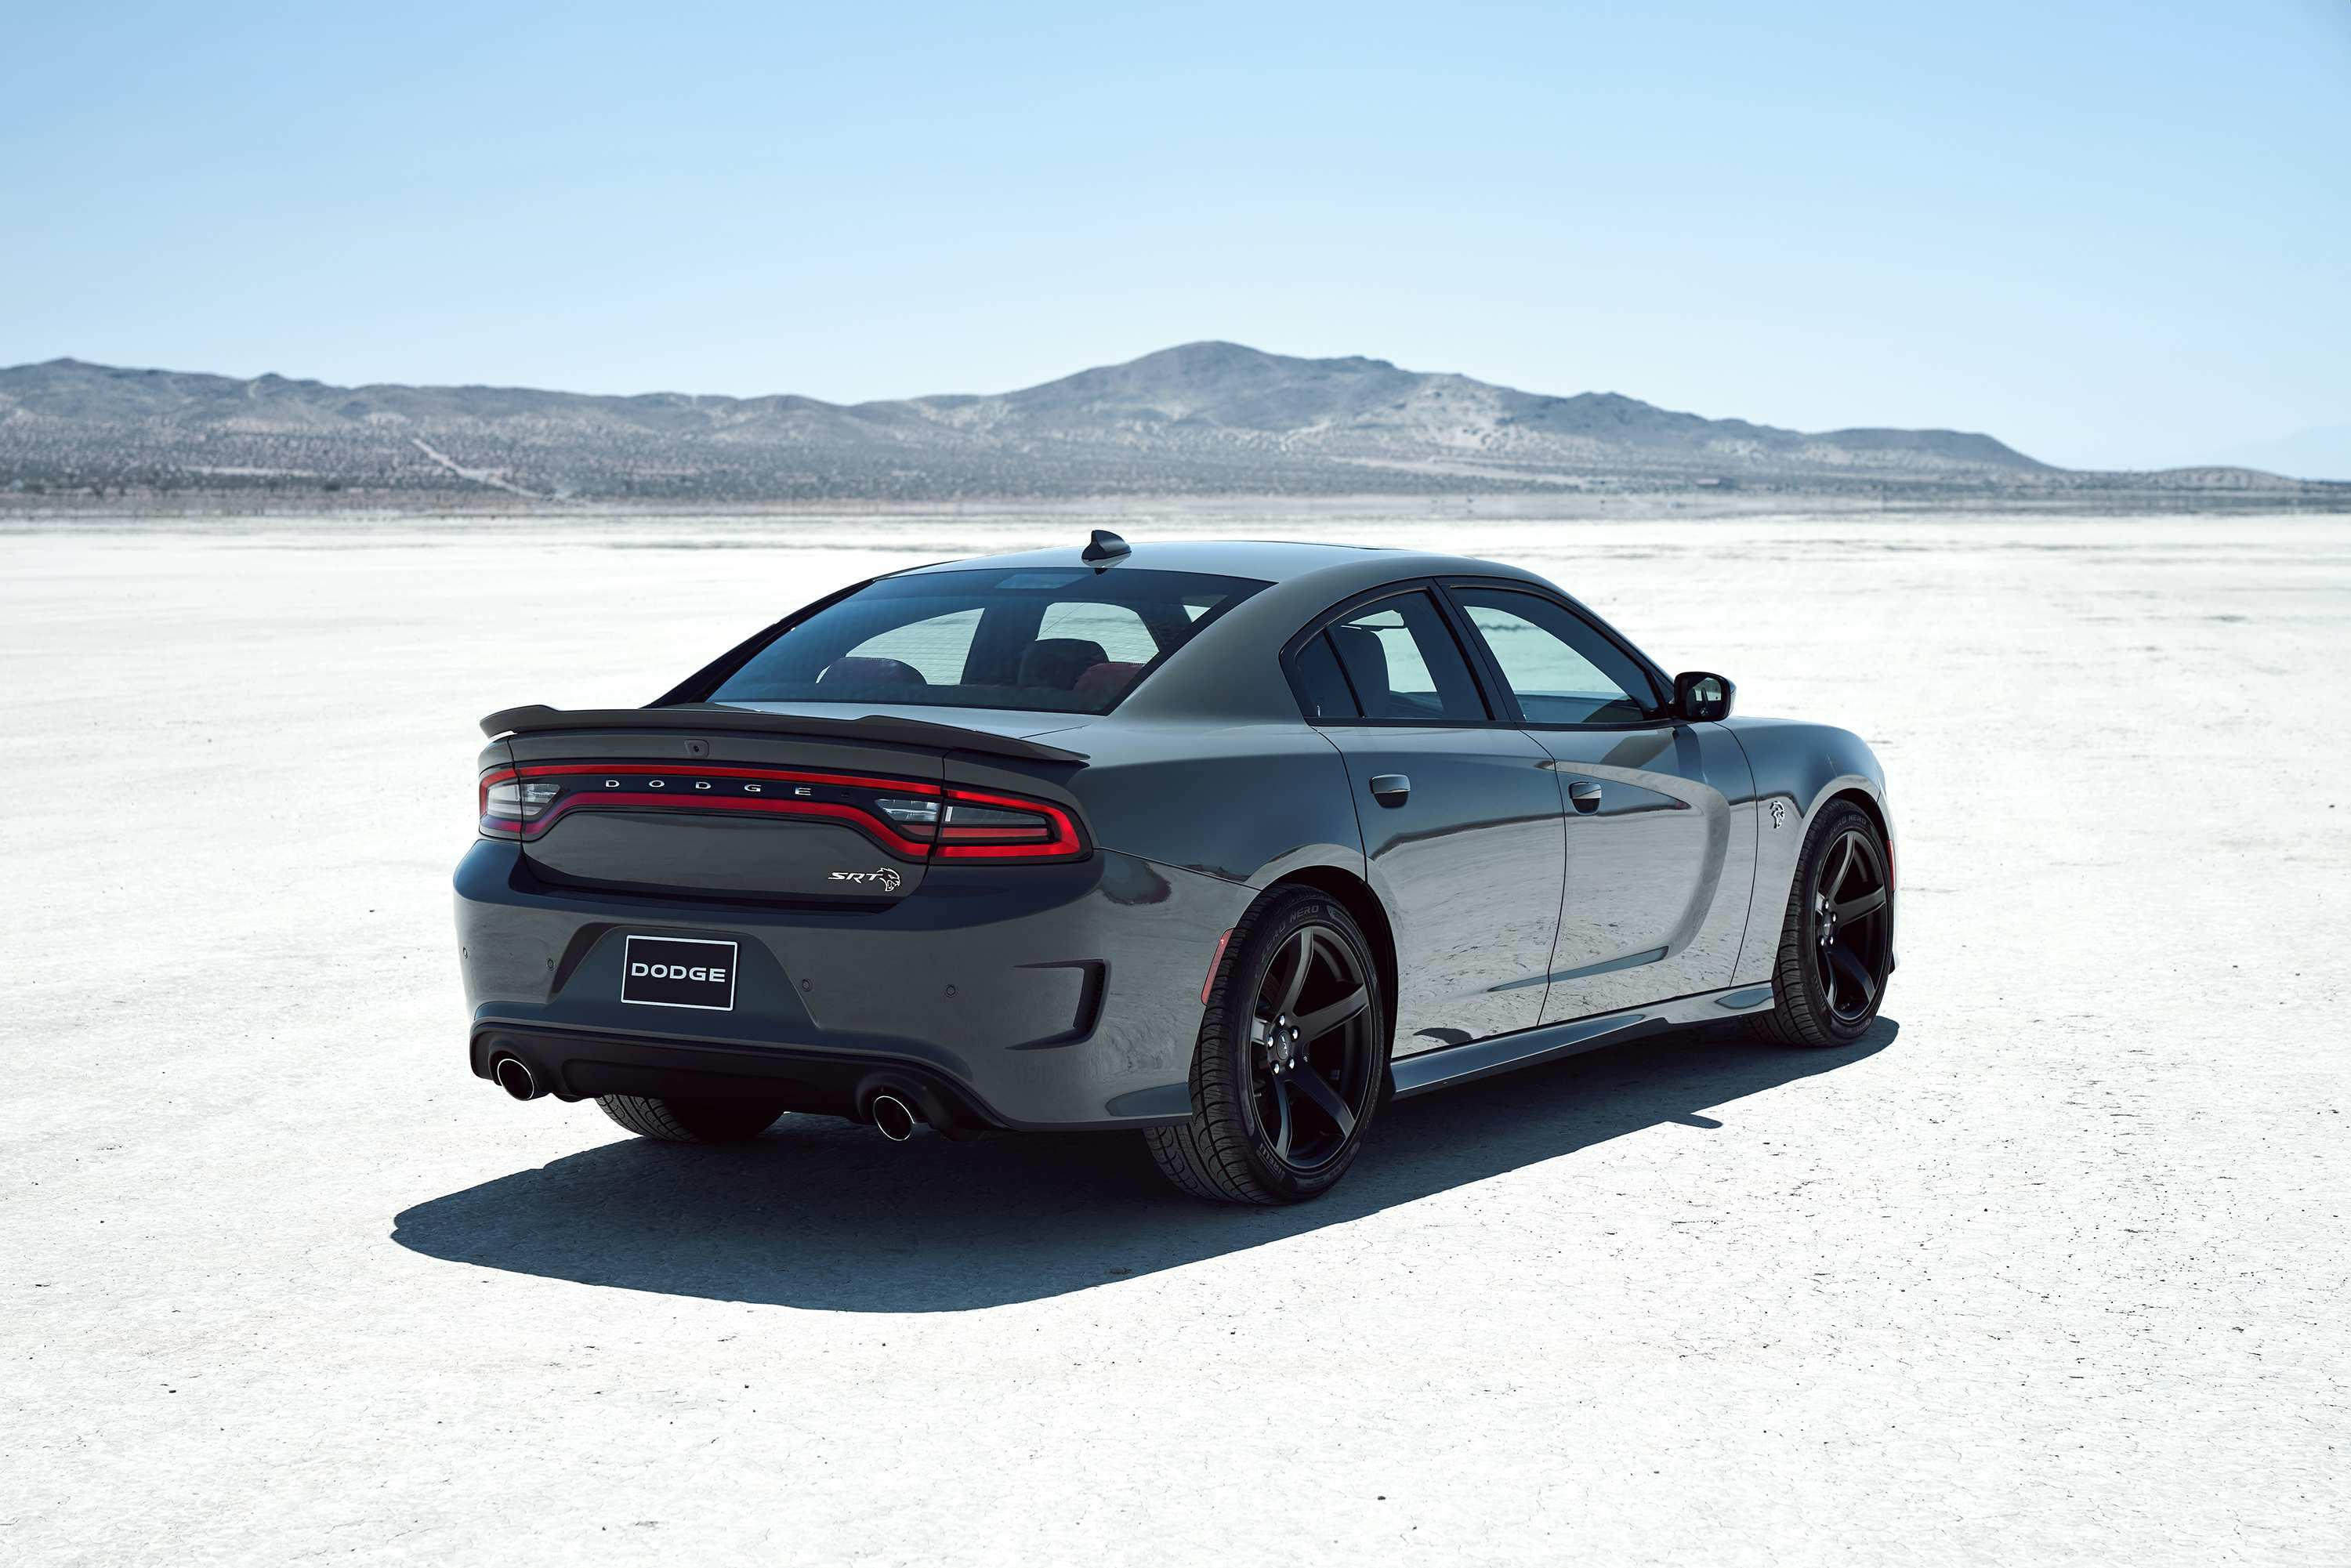 20 New 2019 Dodge Charger SRT8 Specs